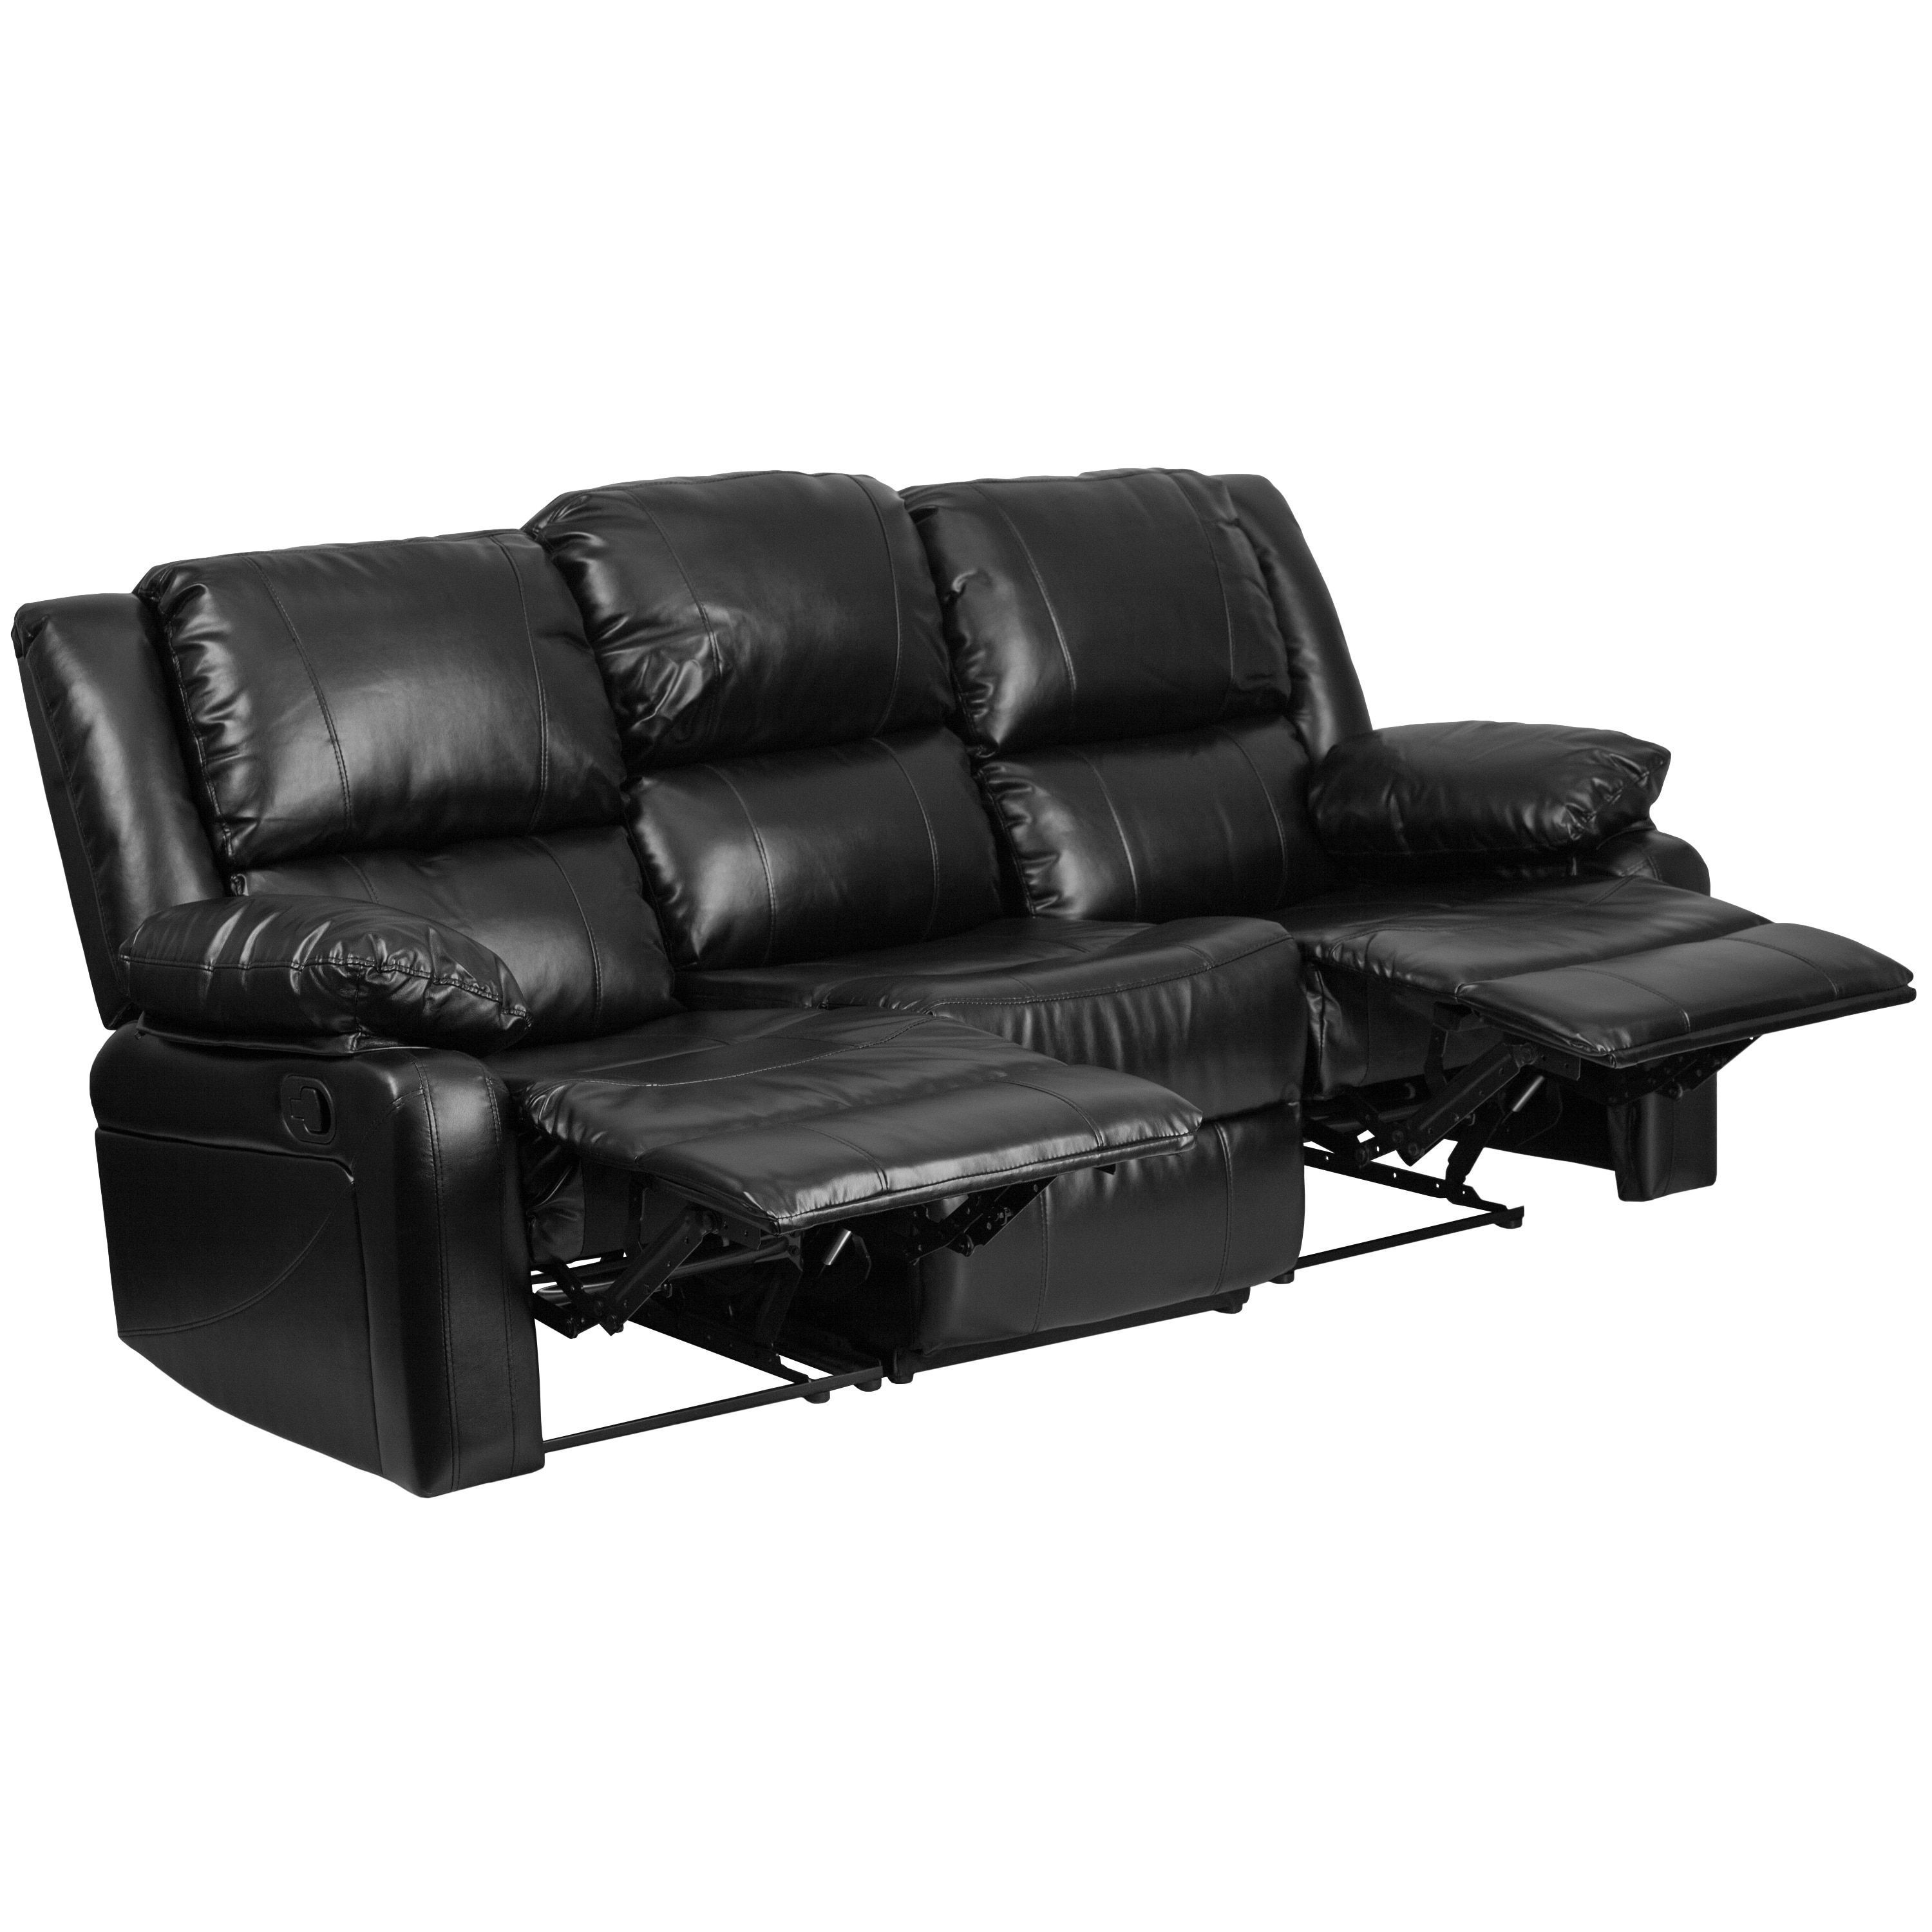 Flash Furniture Harmony Series Leather Sofa With Two Built In Recliners Black